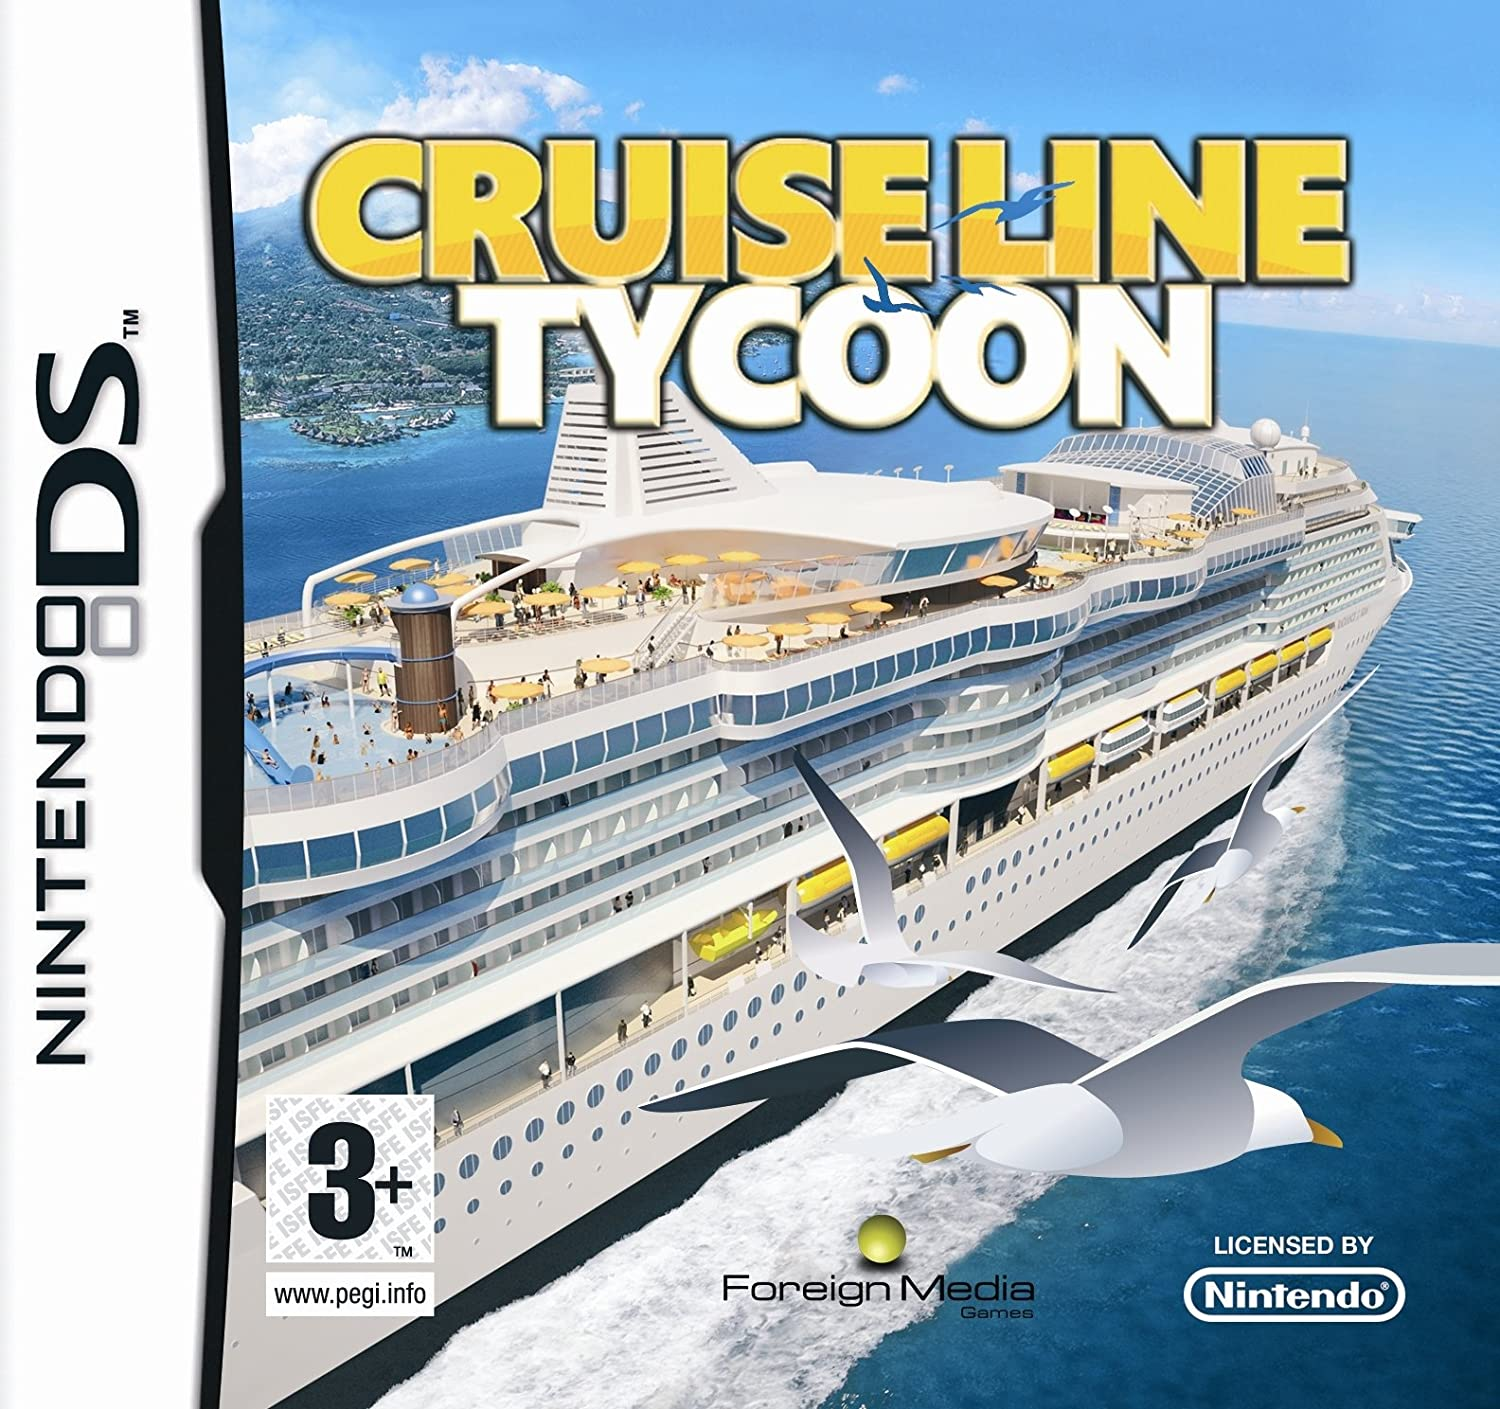 Cruise Ship Tycoon Nintendo DS Amazoncouk PC Video Games - Cruise ship tycoon